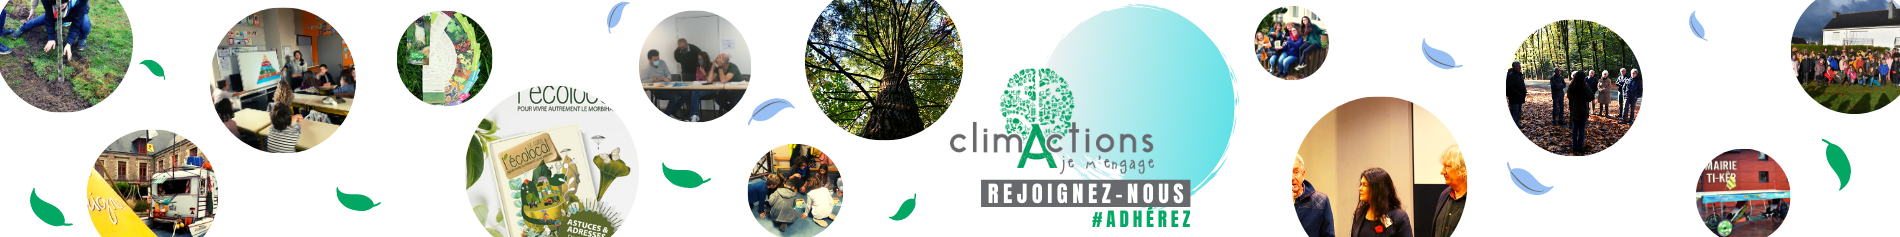 Clim'actions